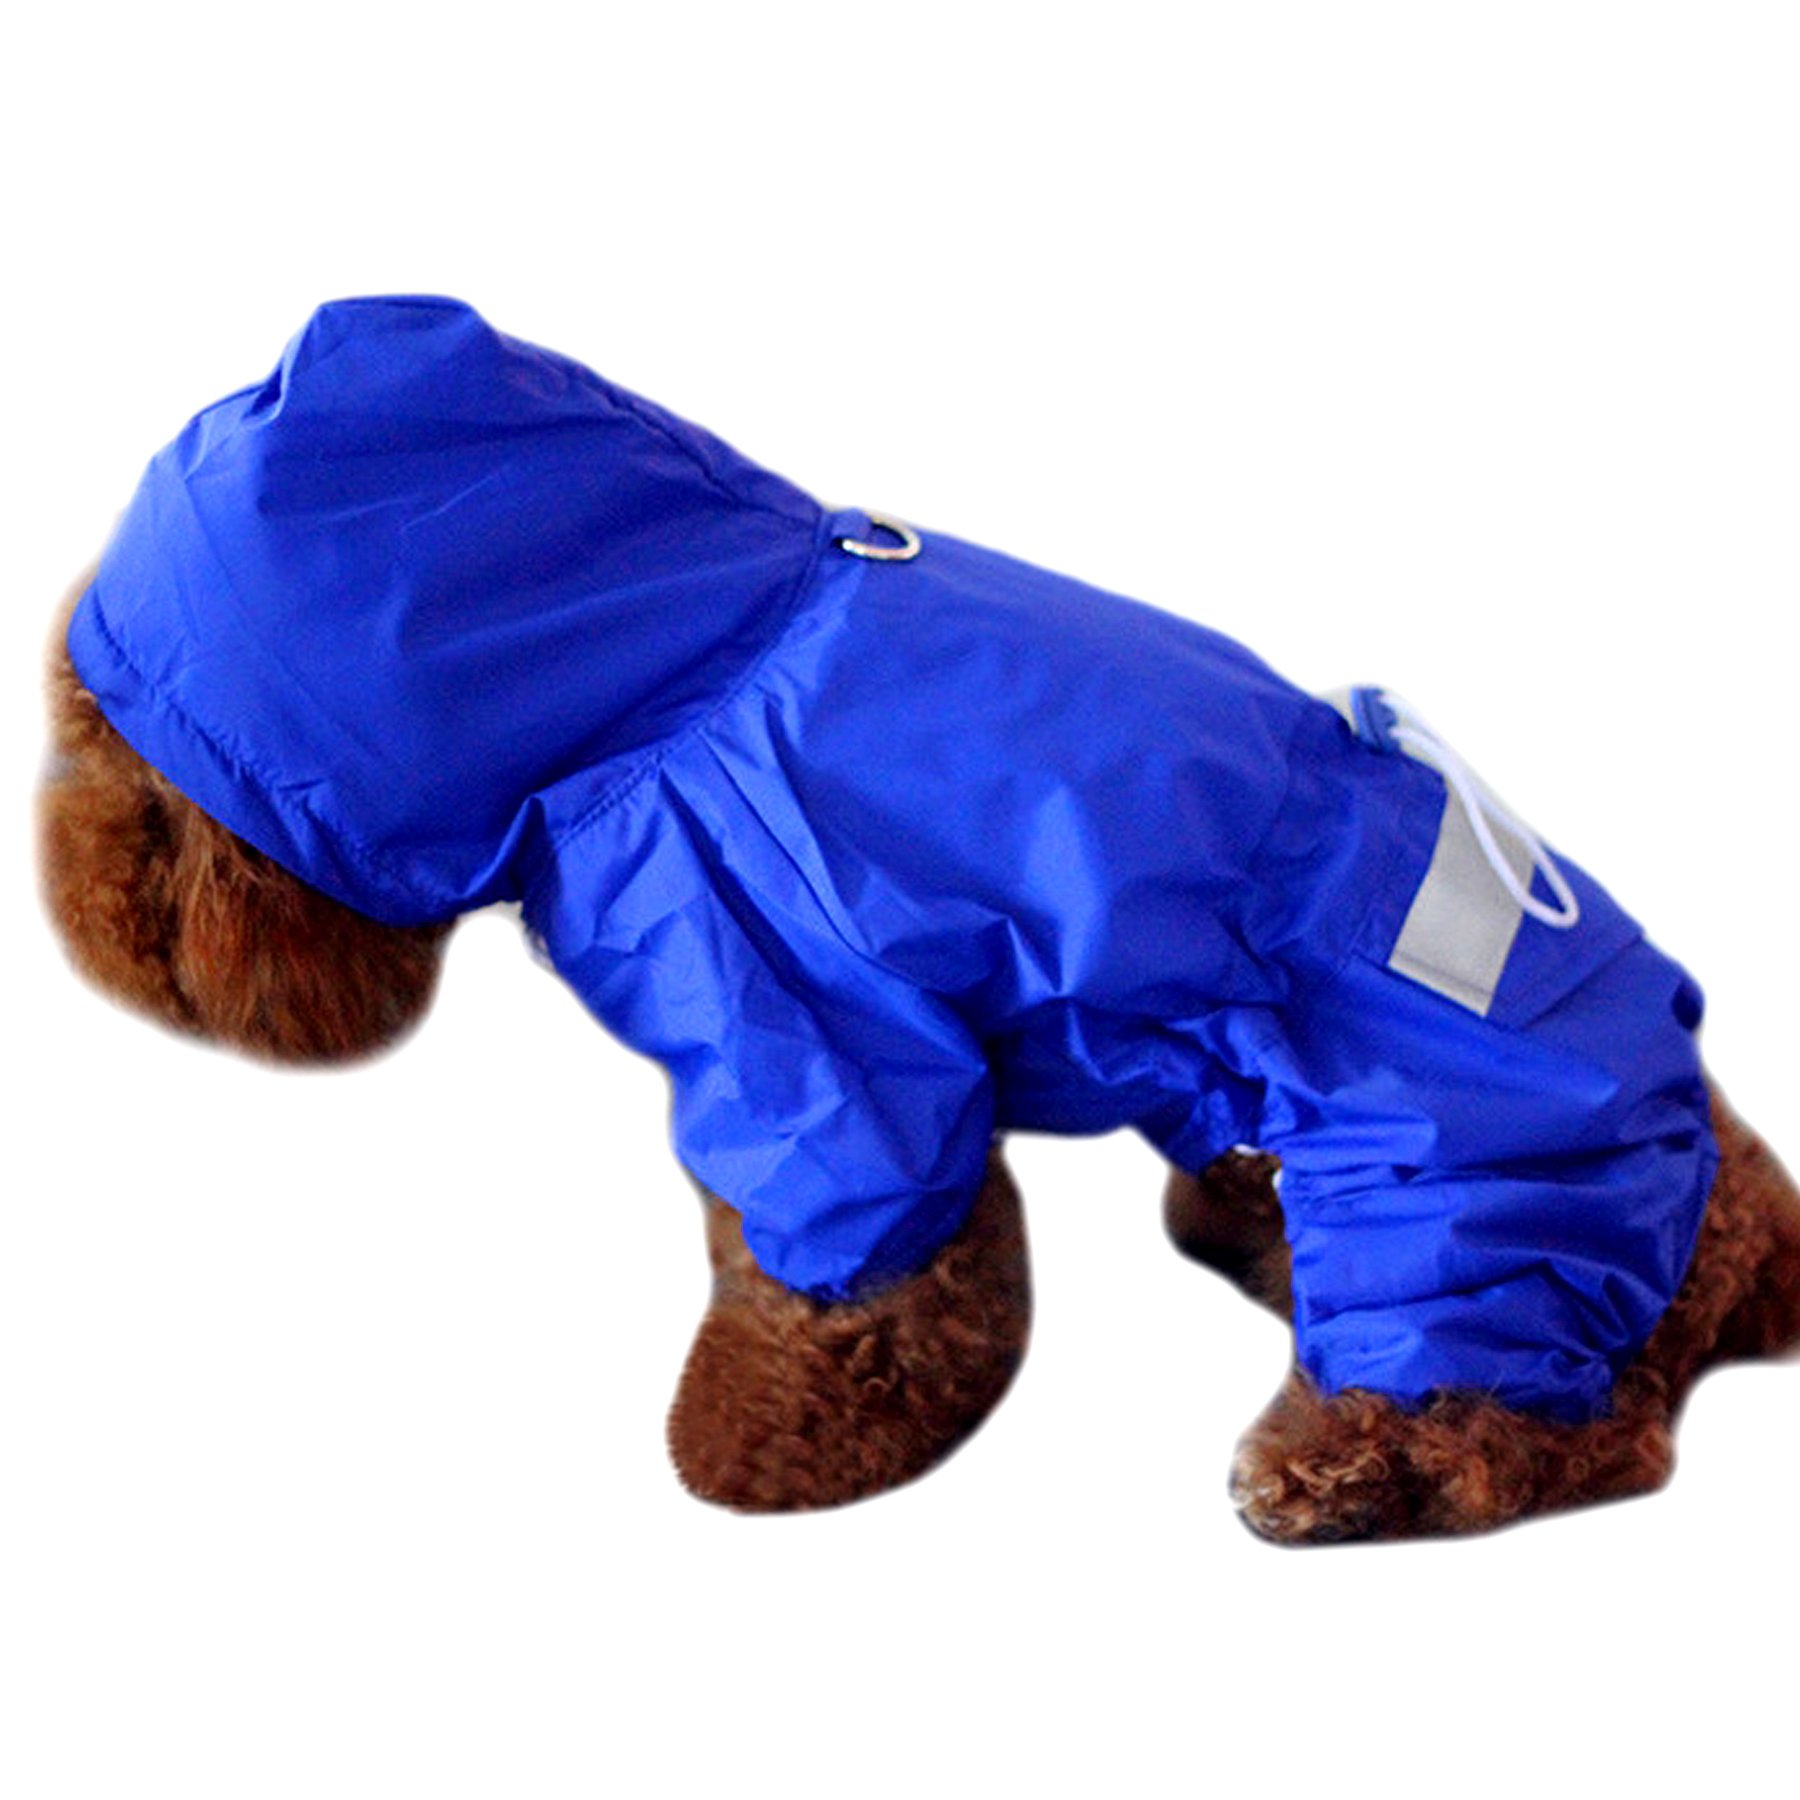 Alfie Pet by Petoga Couture - Willis Rainy Days Waterproof Raincoat (for Dogs and Cats) - Color: Blue, Size: Large